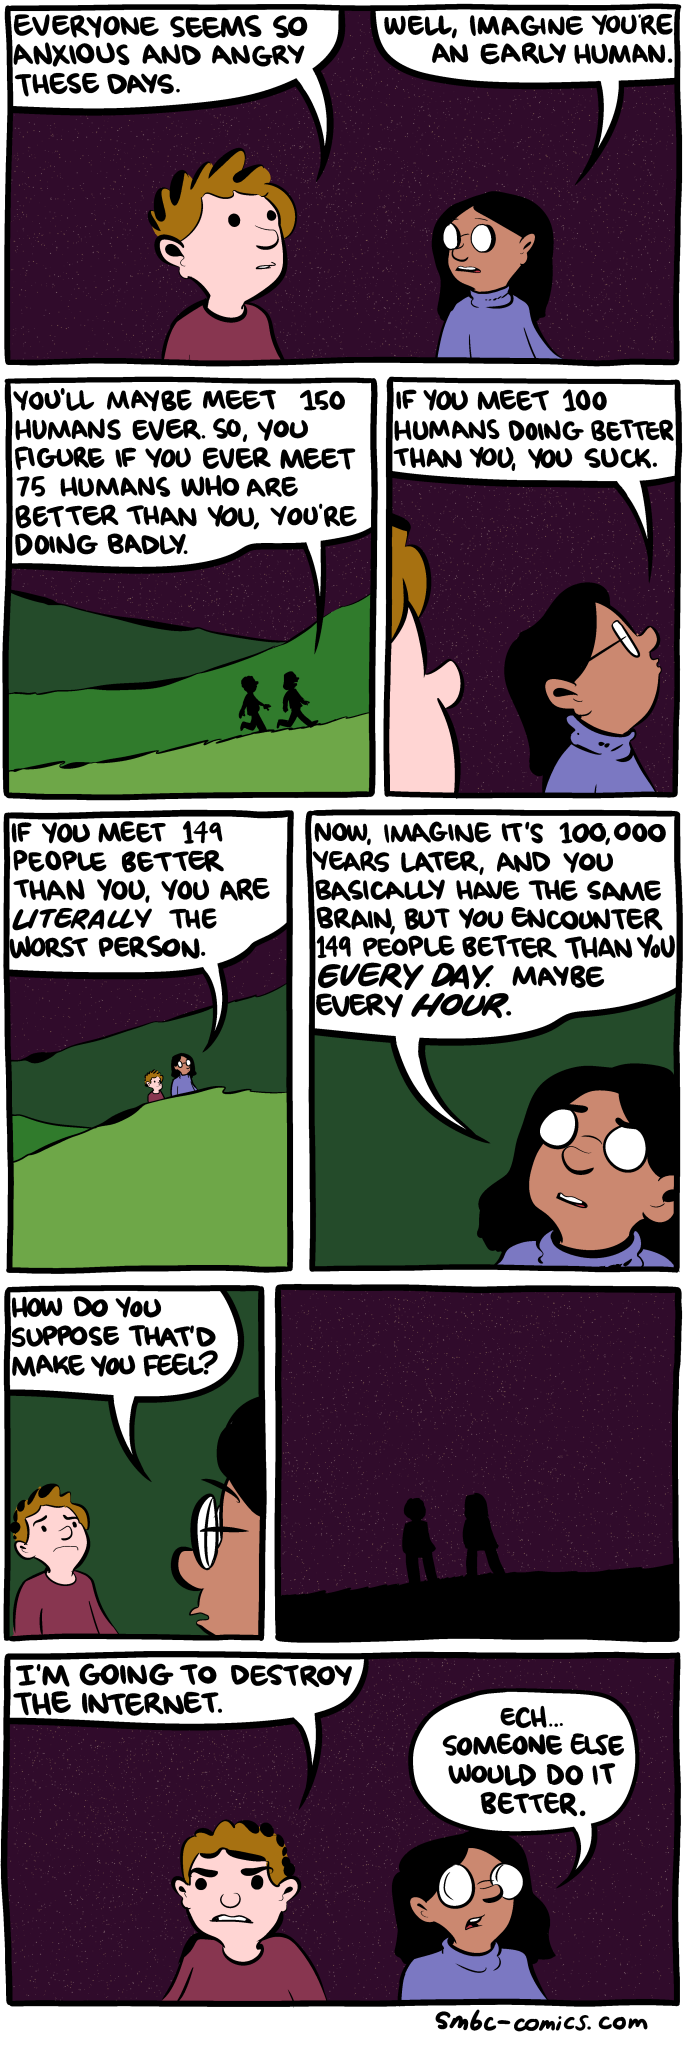 quitting sitting Facebook depression mental health productivity time wasting waster social media linked to unhappiness jealously curated life image comic saturday morning breakfast cereal